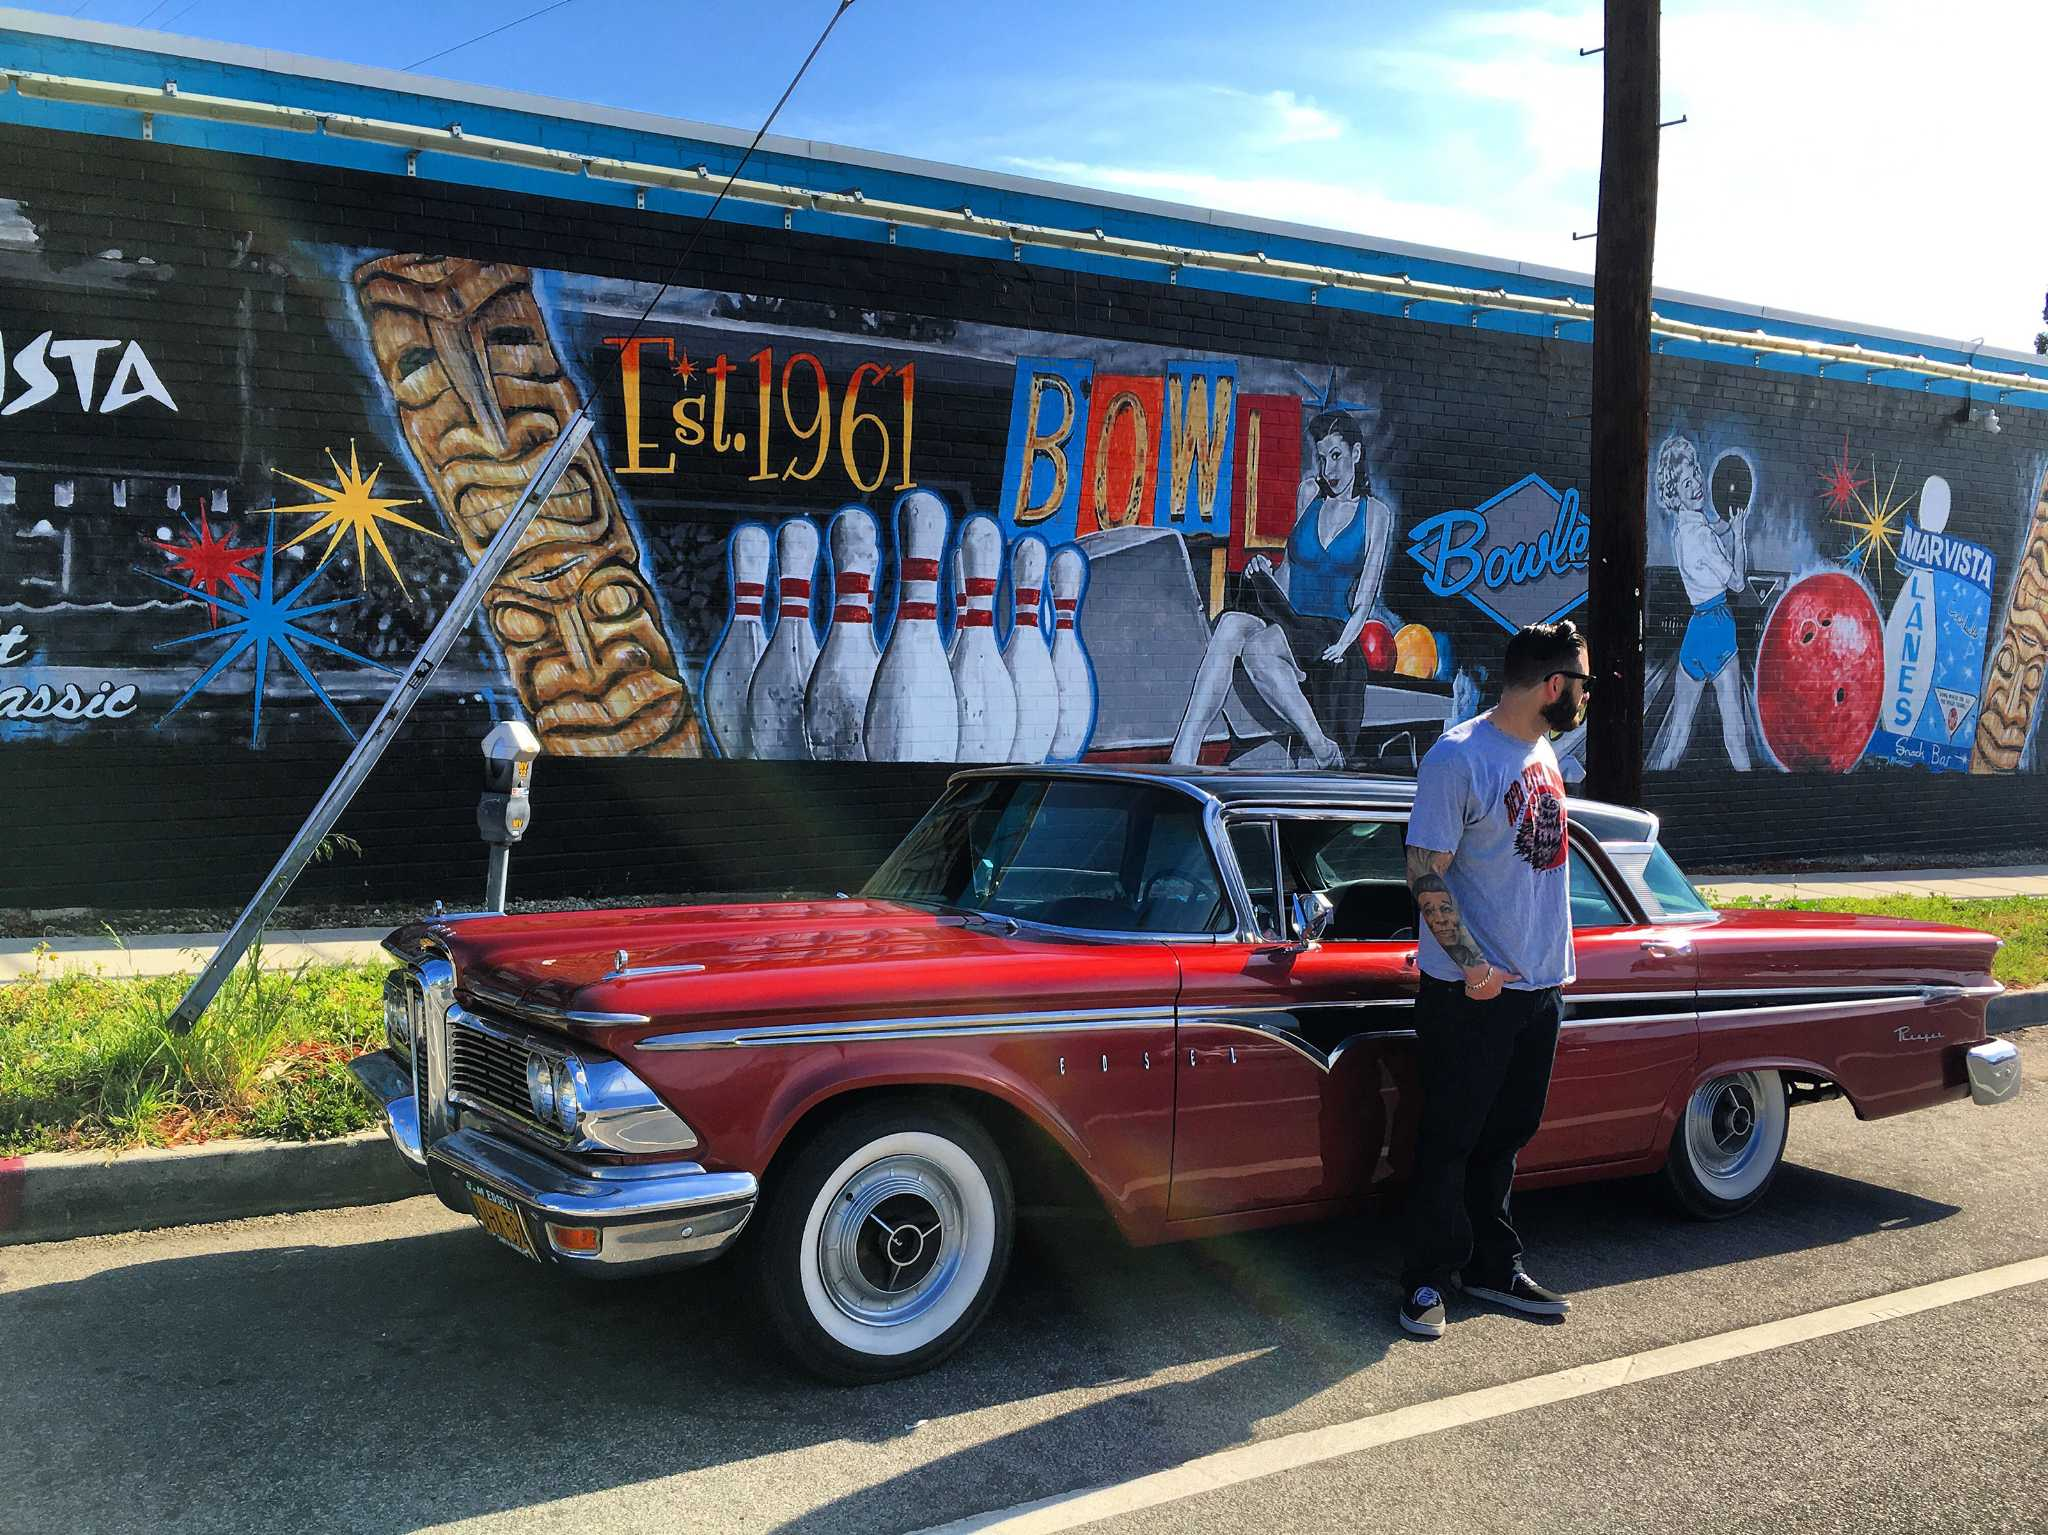 Heidi's customs & classics: Los Angeles' car-centric nature influences Jonas Never's work